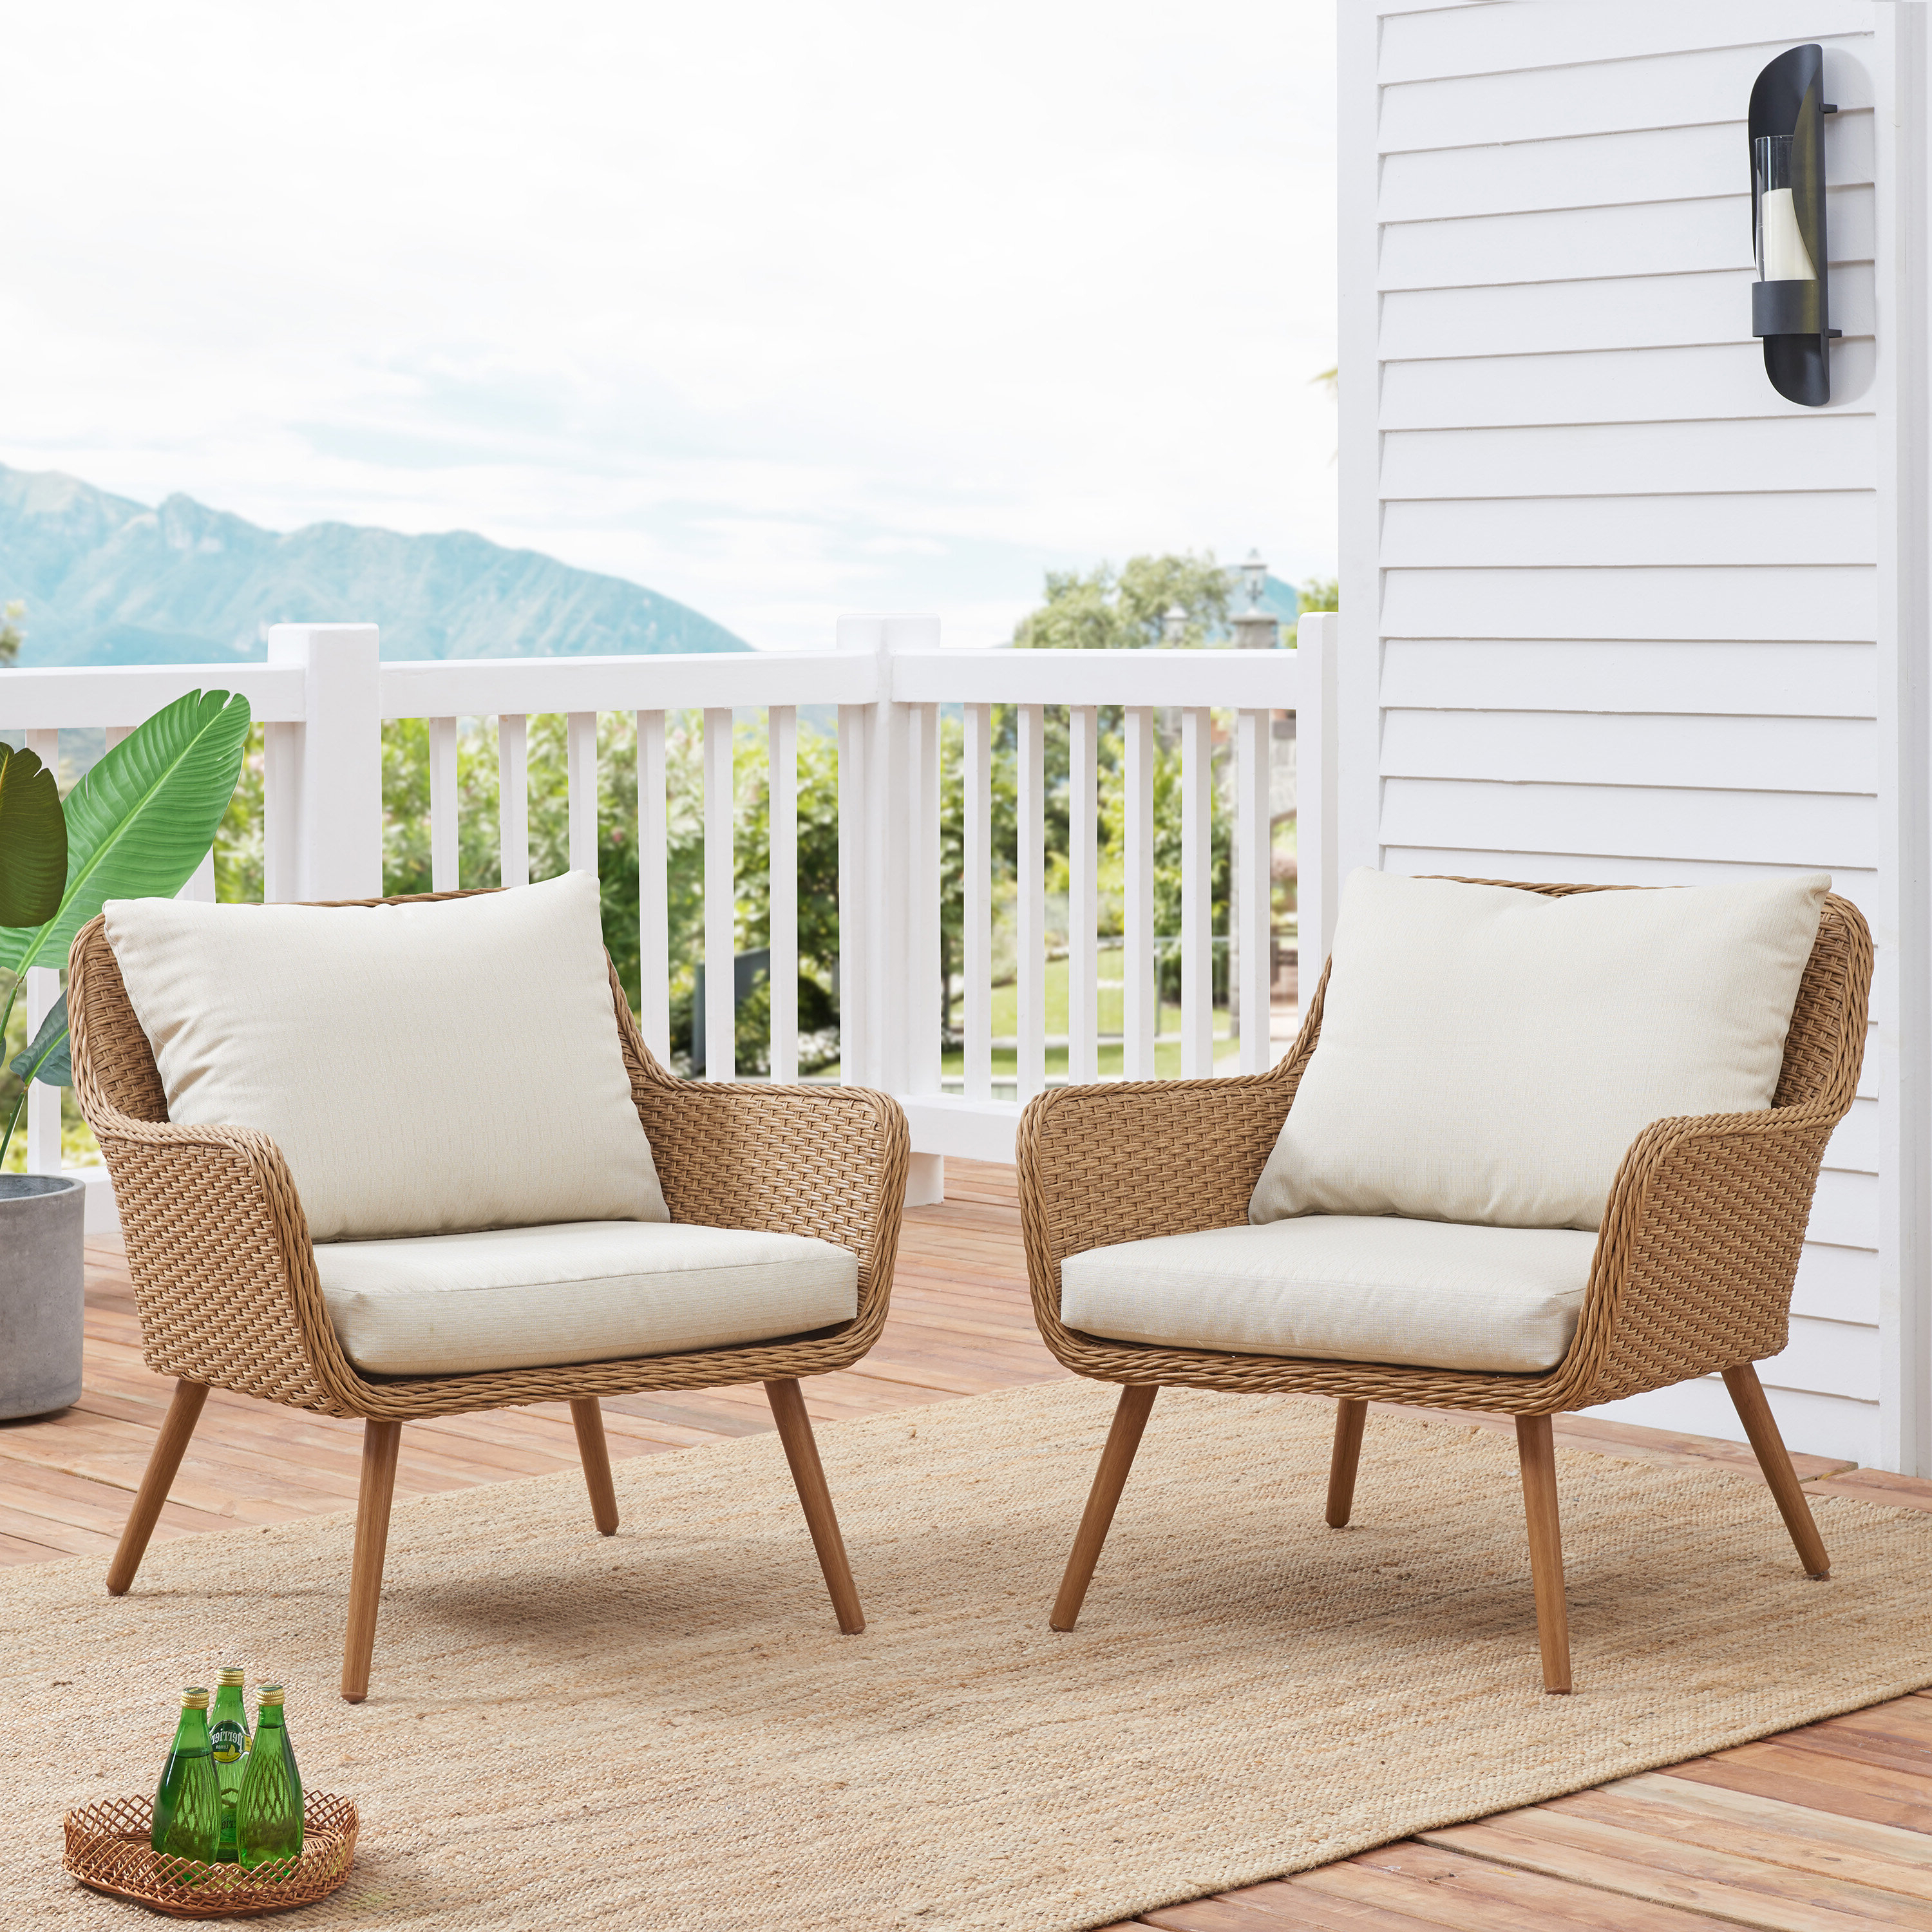 Favorite Chaise Lounge Chairs In Bronze With Oatmeal Cushions Regarding Machen Outdoor Patio Chair With Cushions (View 18 of 25)